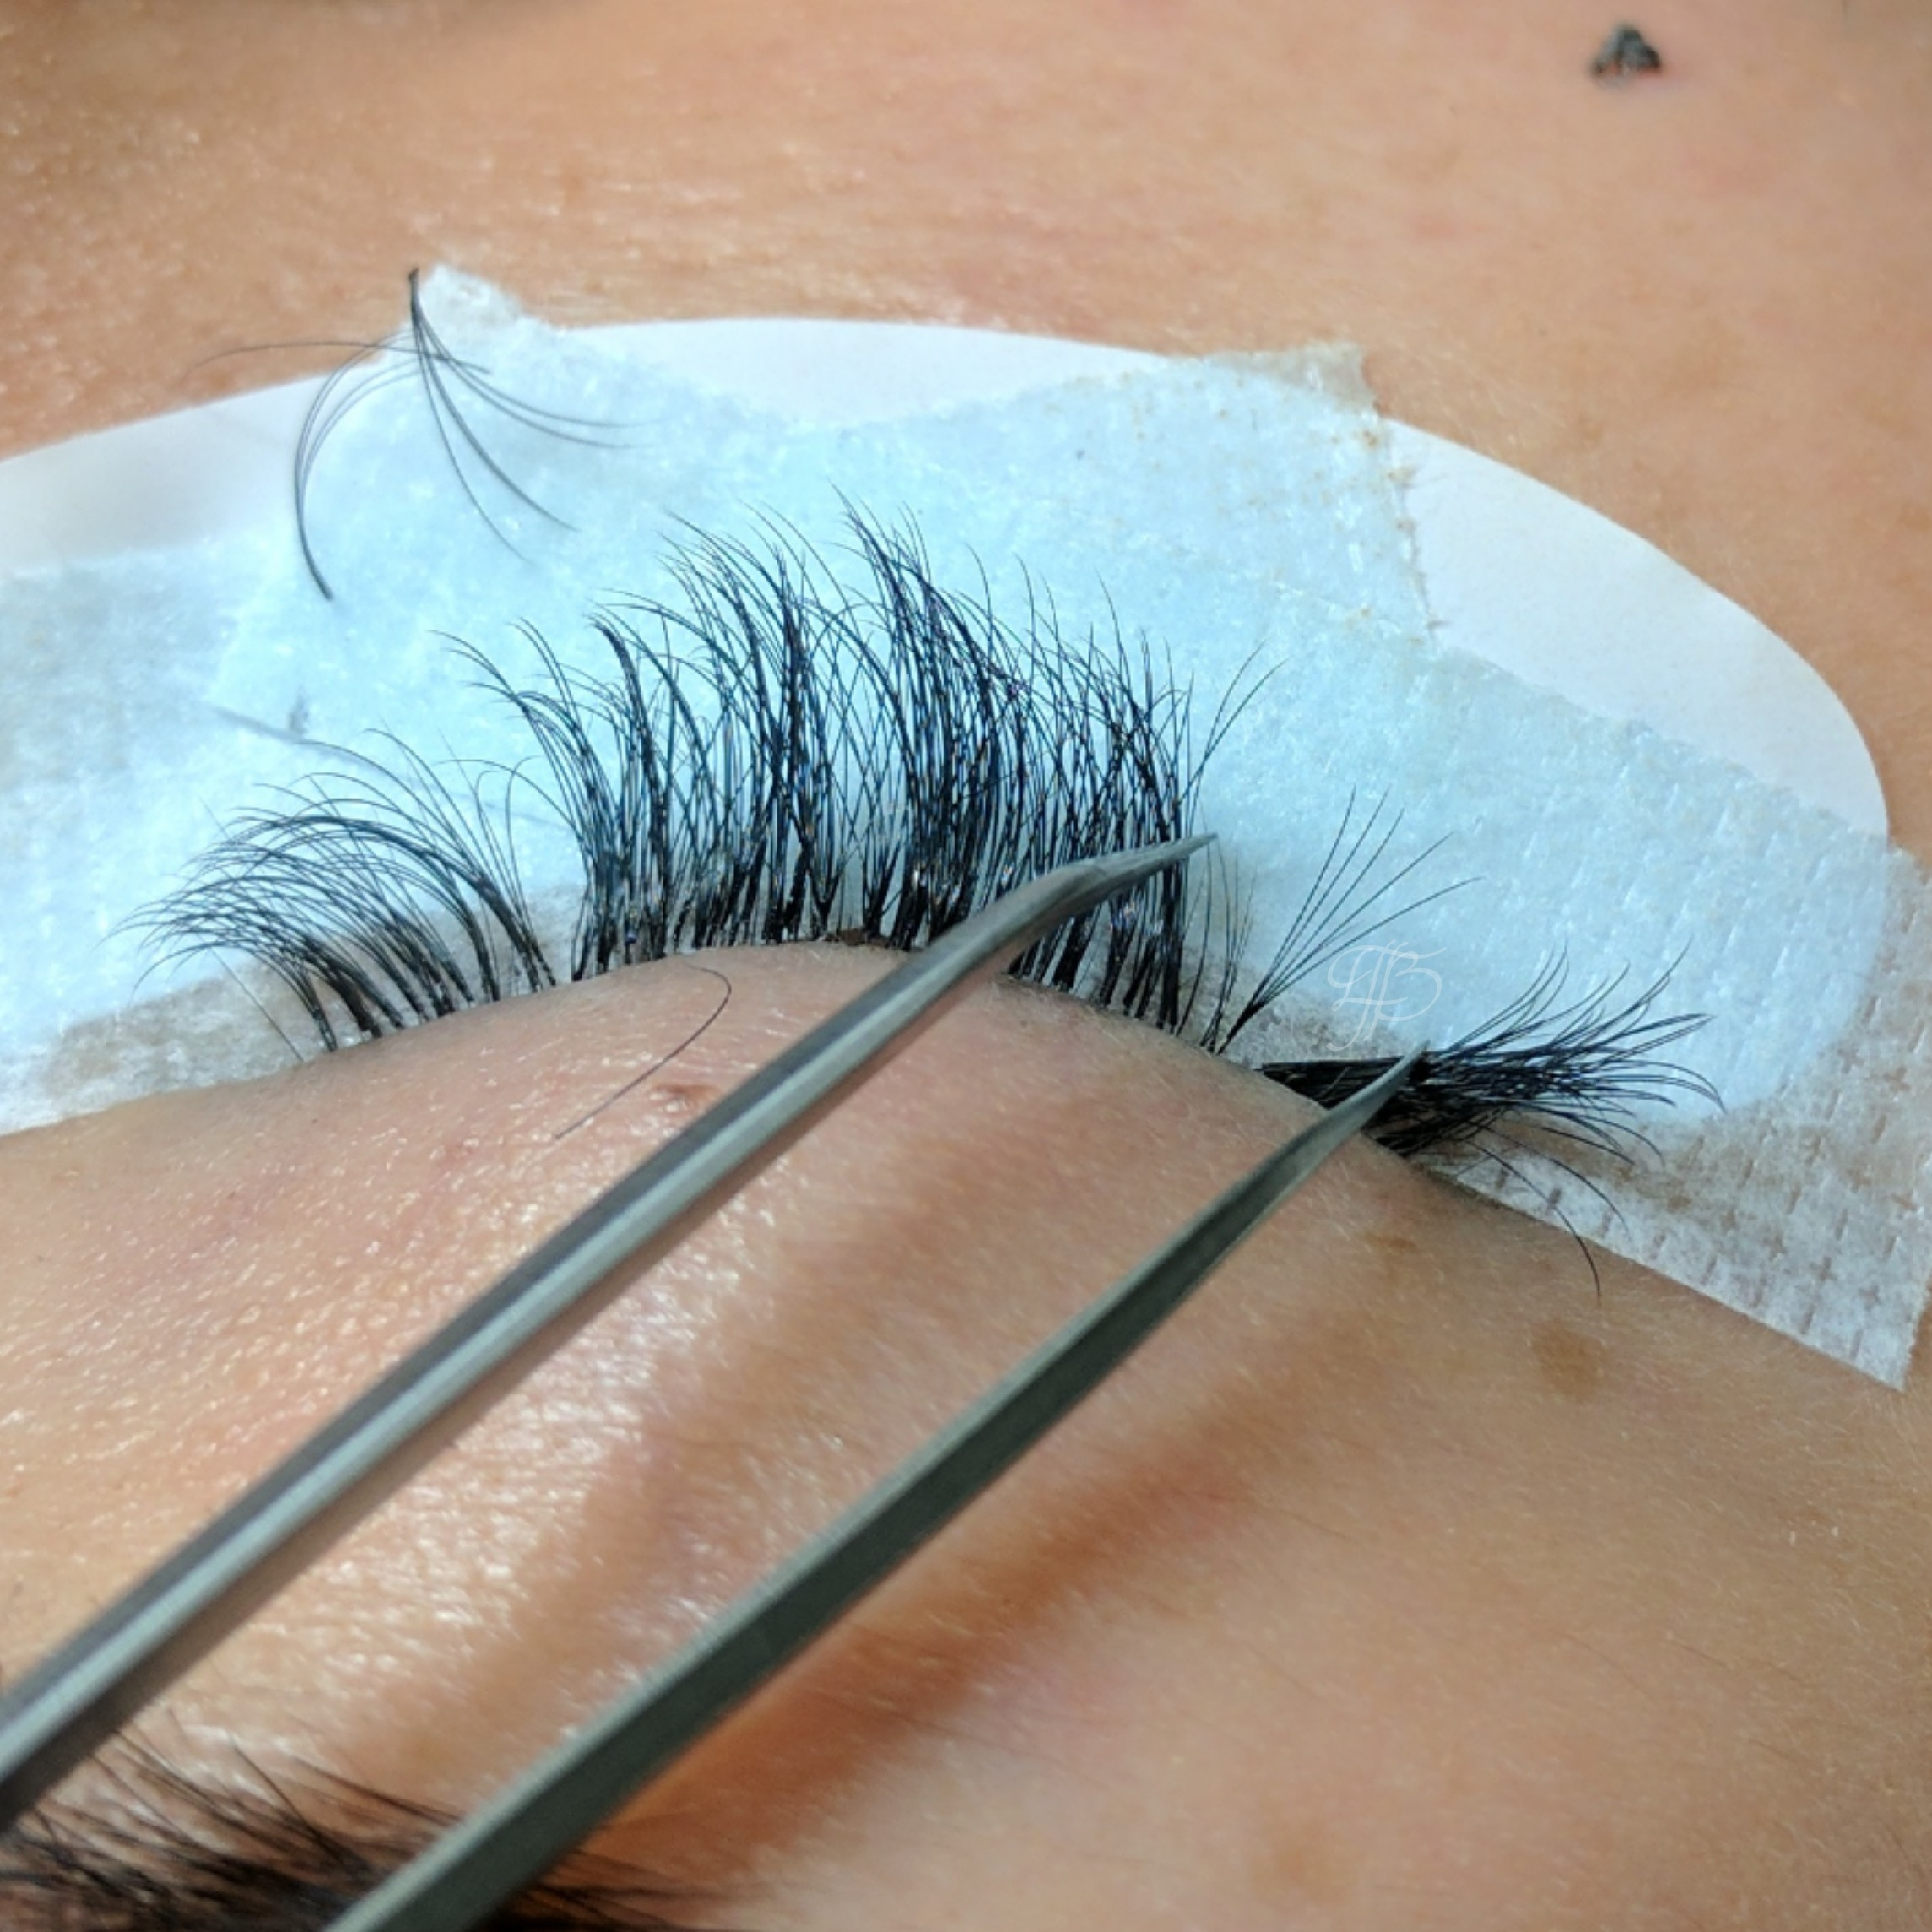 isolation of a single natural lash with a volume extension attached